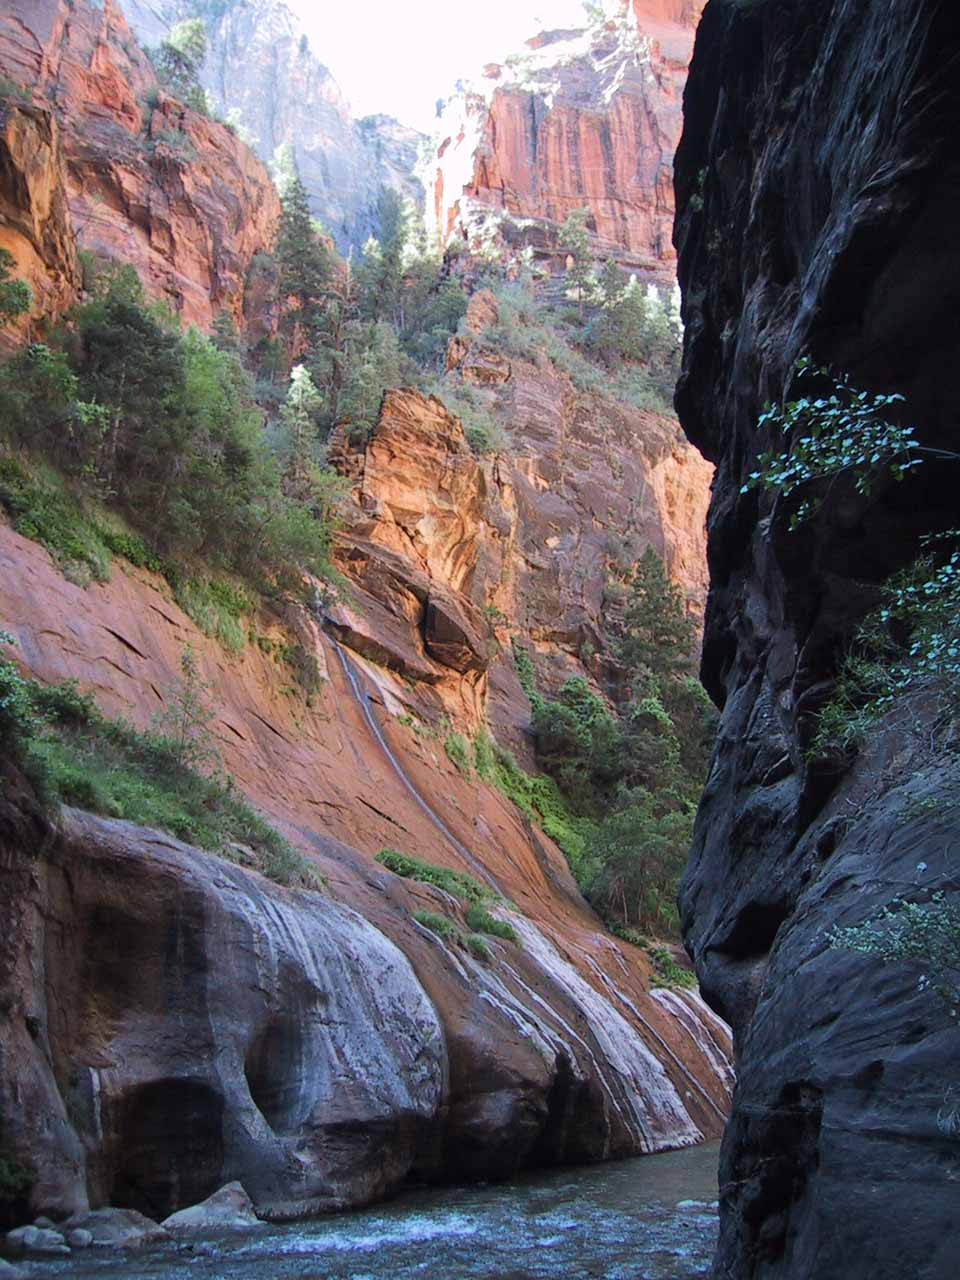 Looking back at the waterfall from Mystery Canyon in 2001